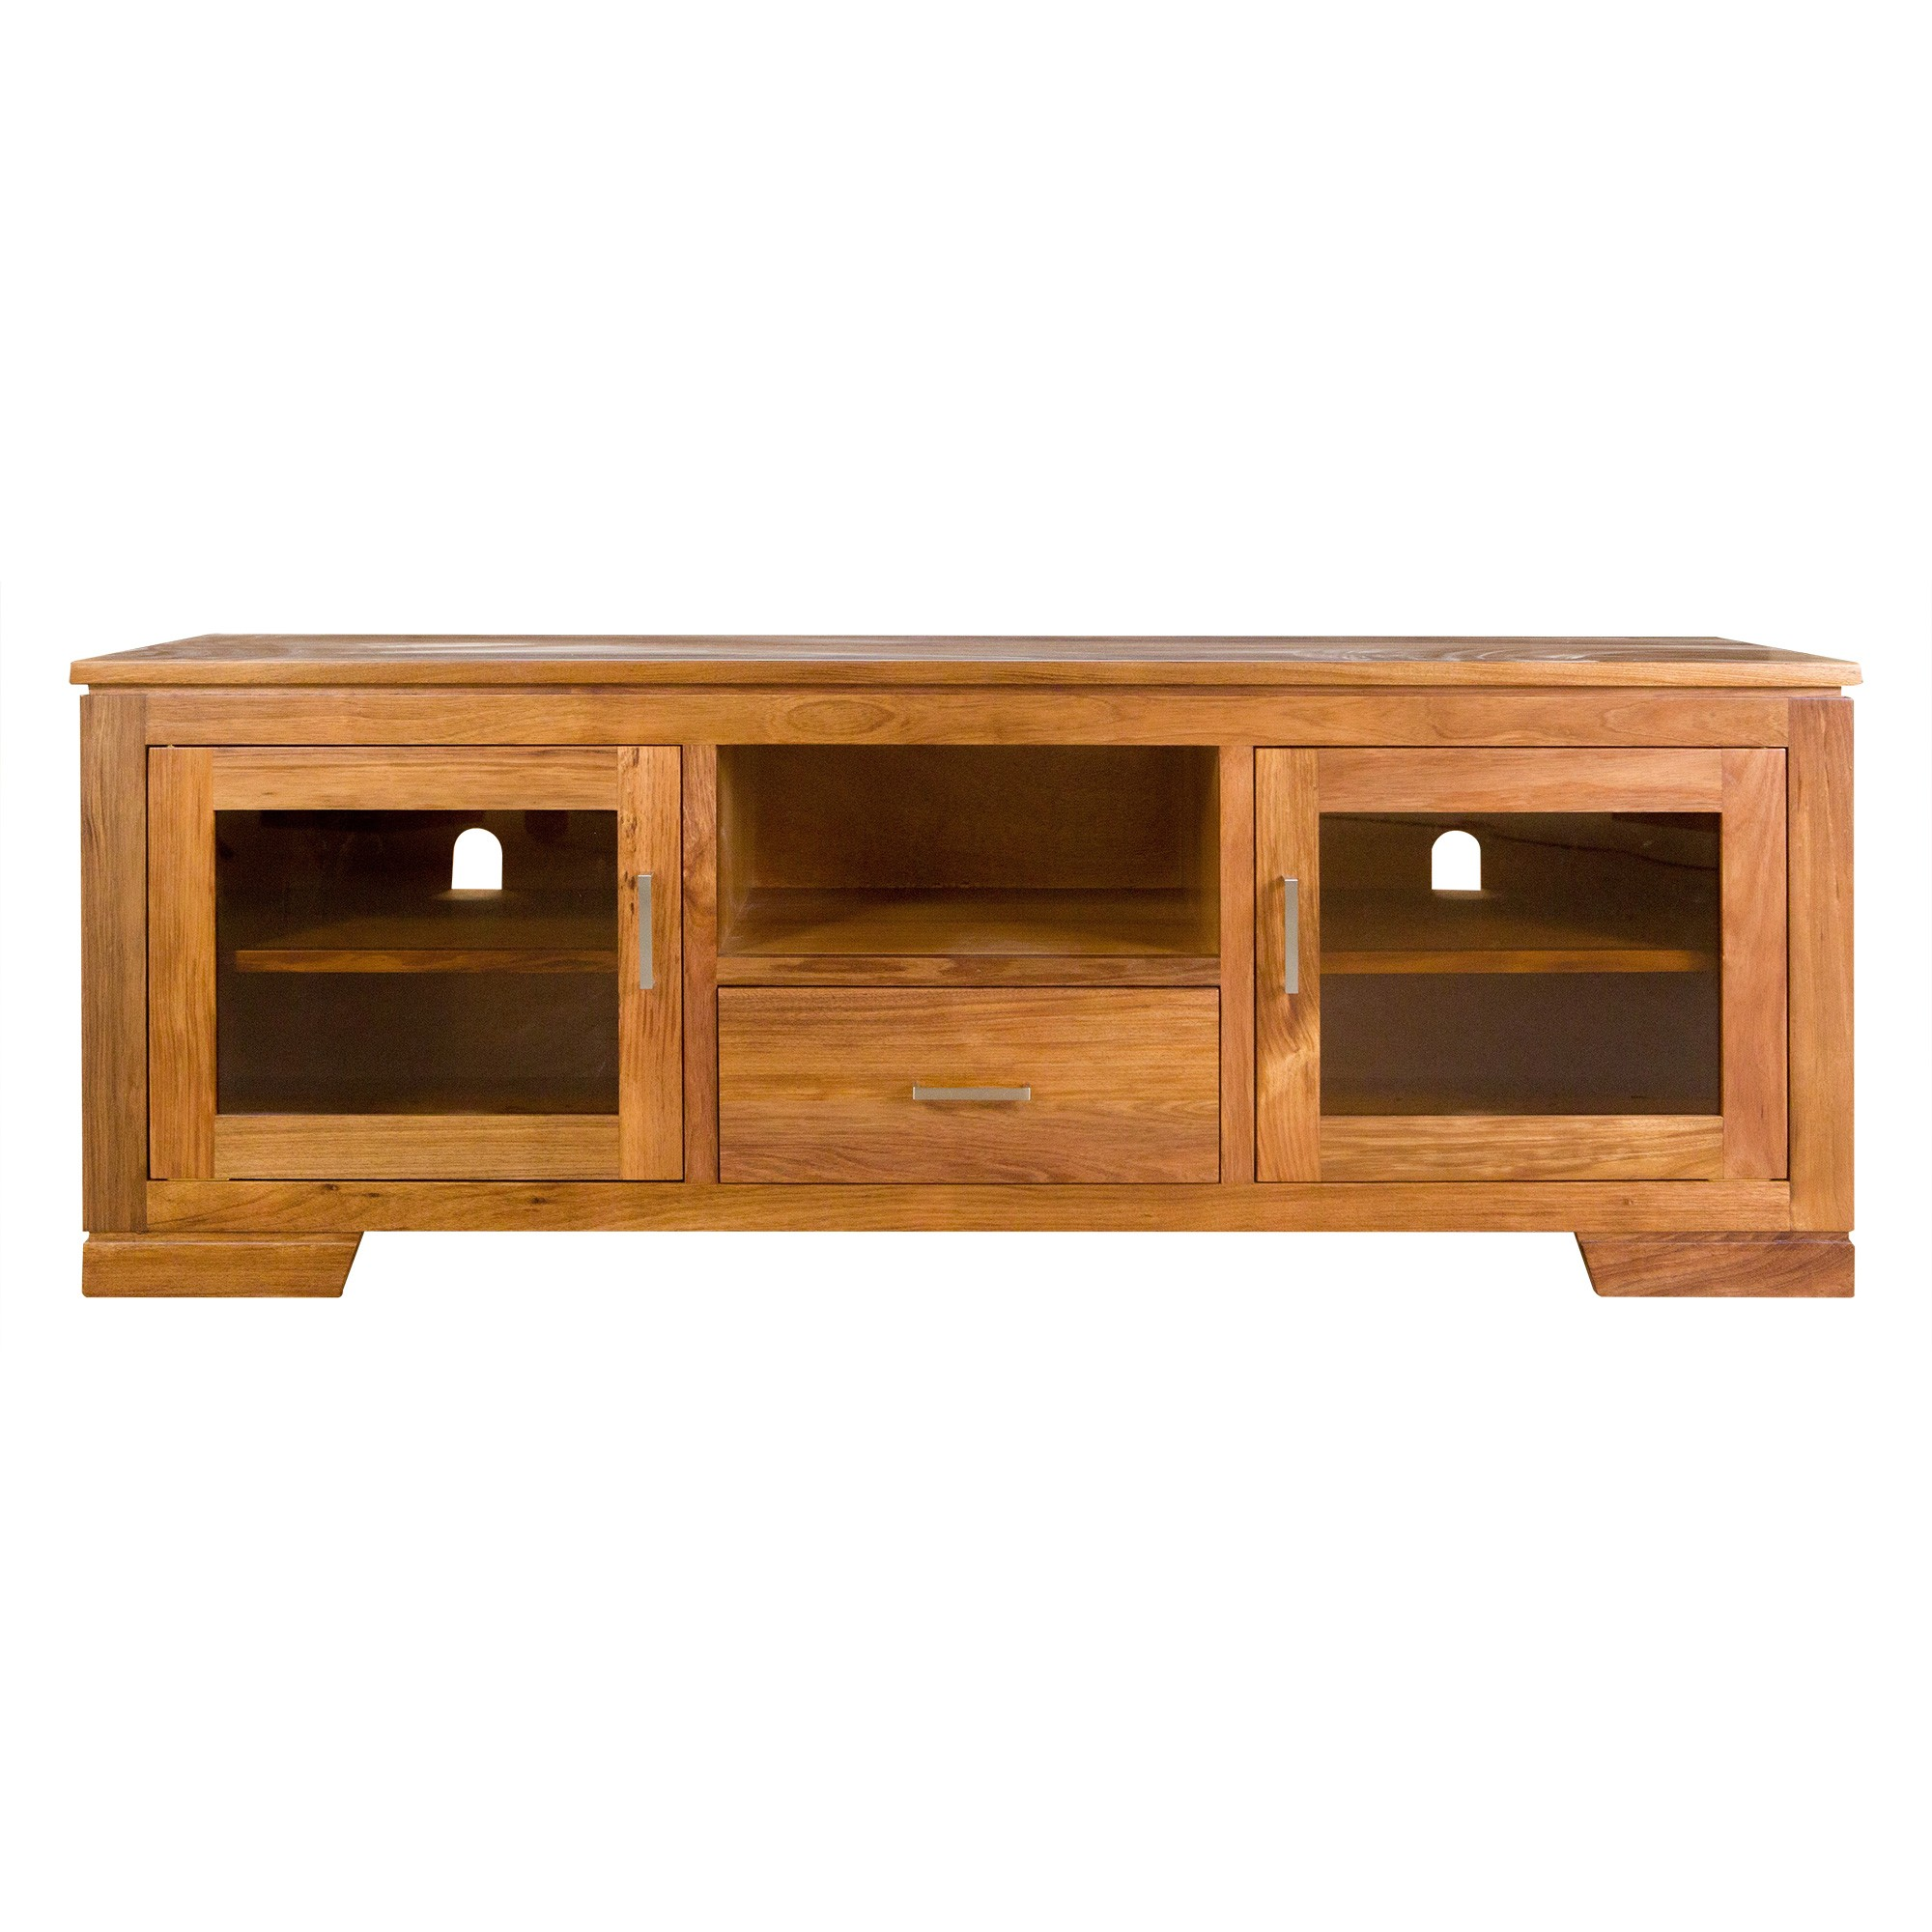 Harlington-II Blackwood Timber 2 Door 1 Drawer TV Unit, 160cm